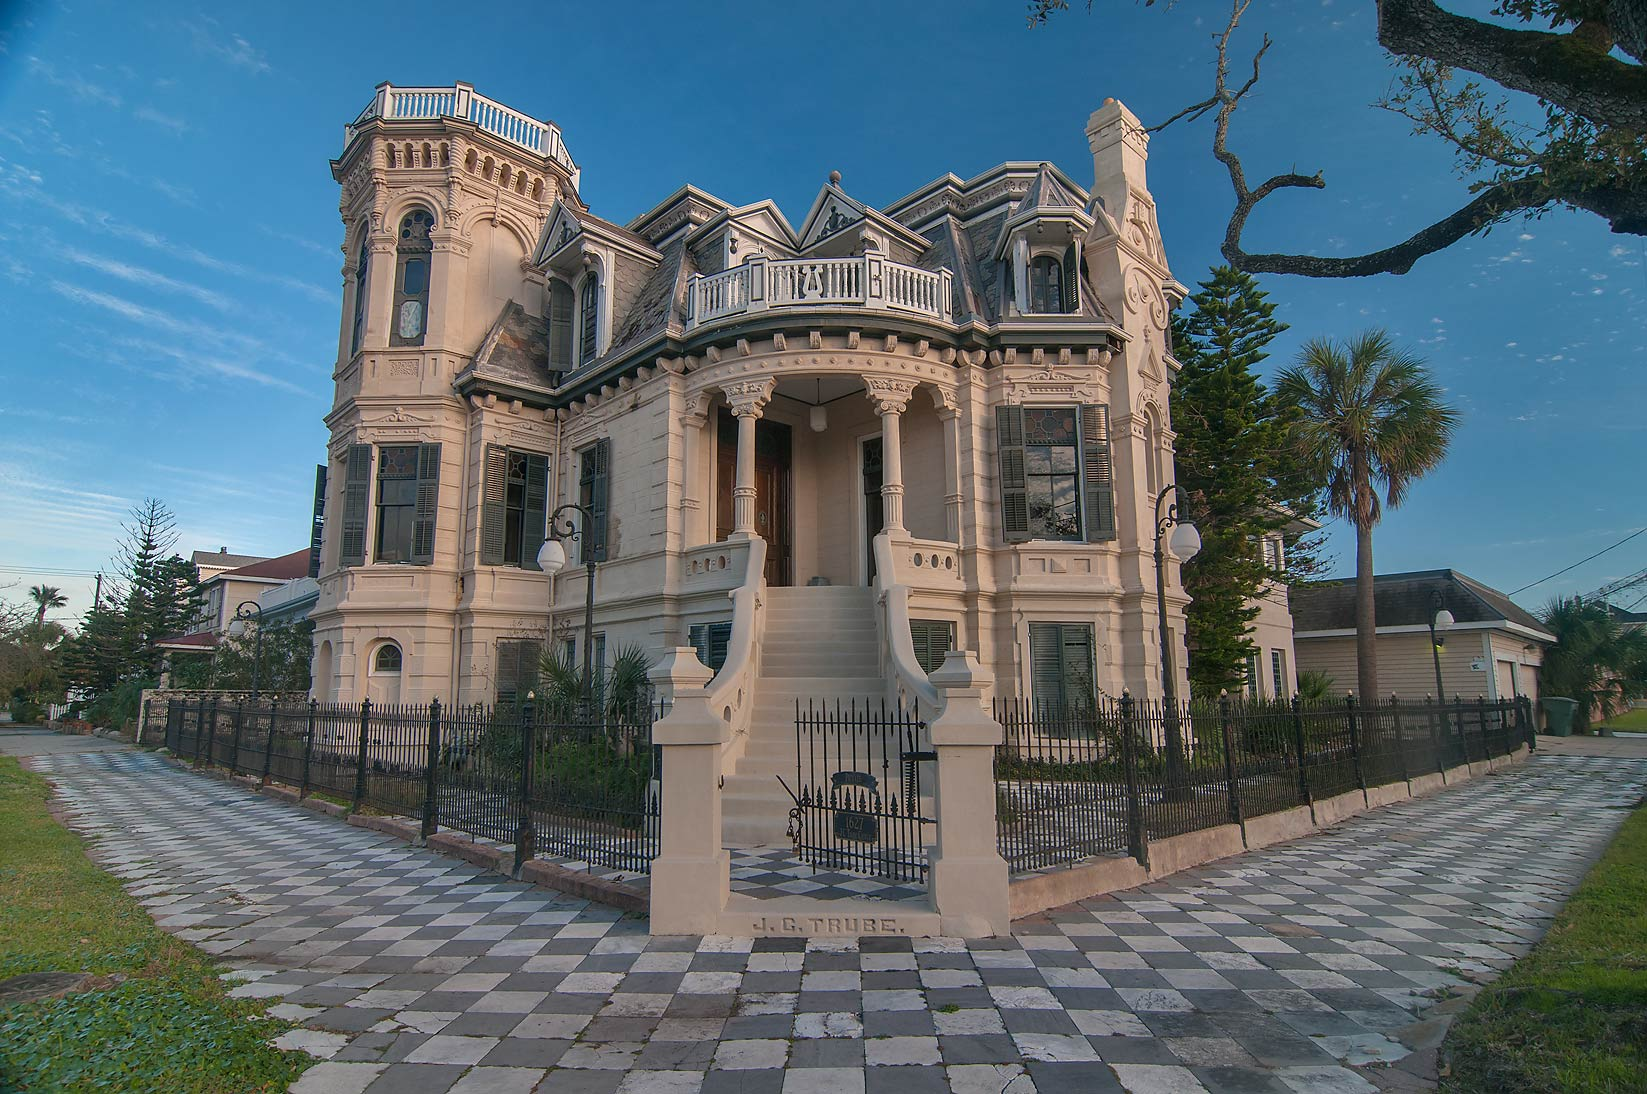 Trube Castle (1890) at 1627 Sealy St., a corner of 17th St. at evening. Galveston, Texas